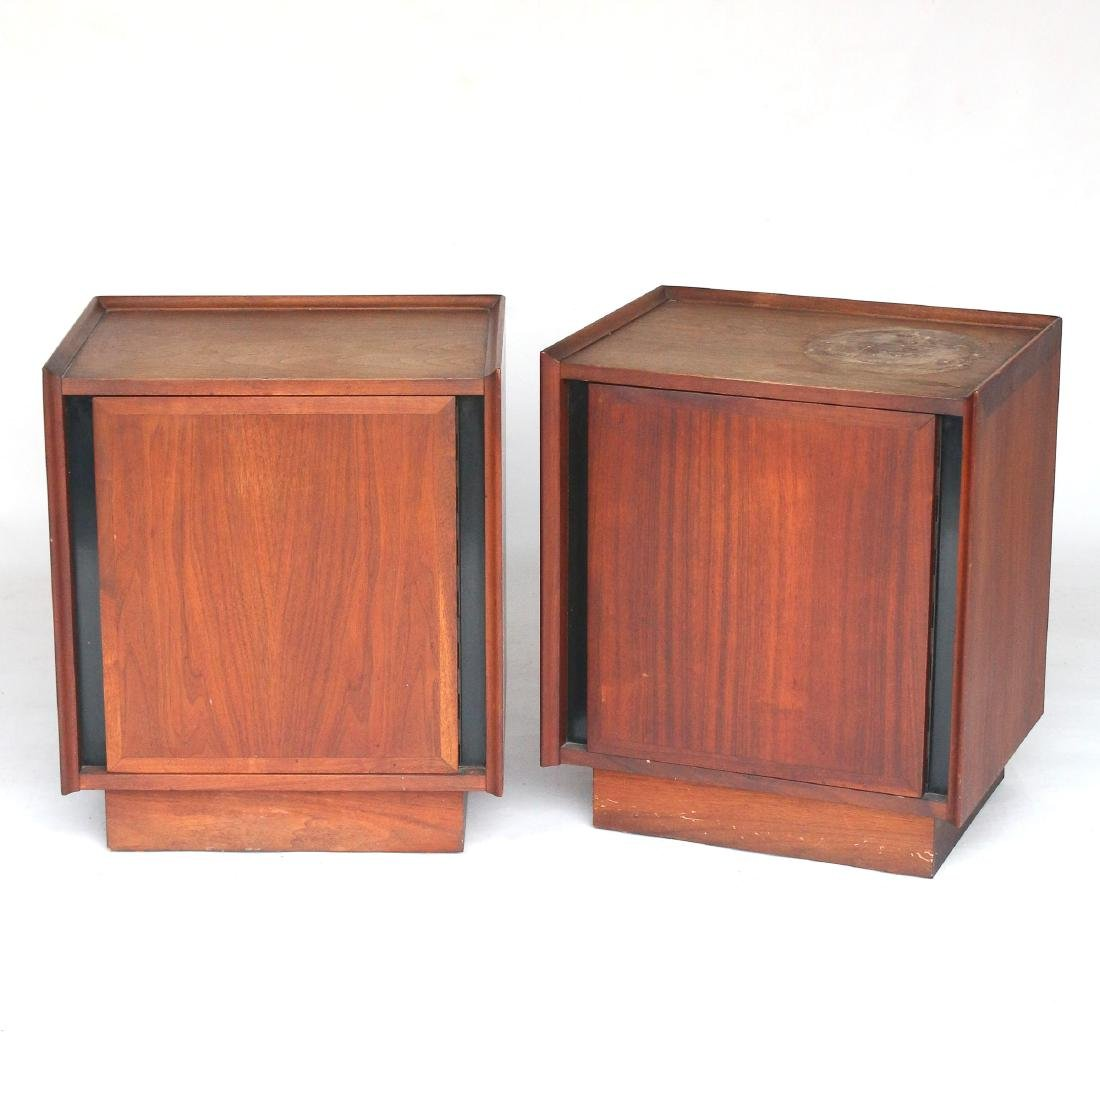 PAIR MID CENTURY BEDSIDE CABINETS